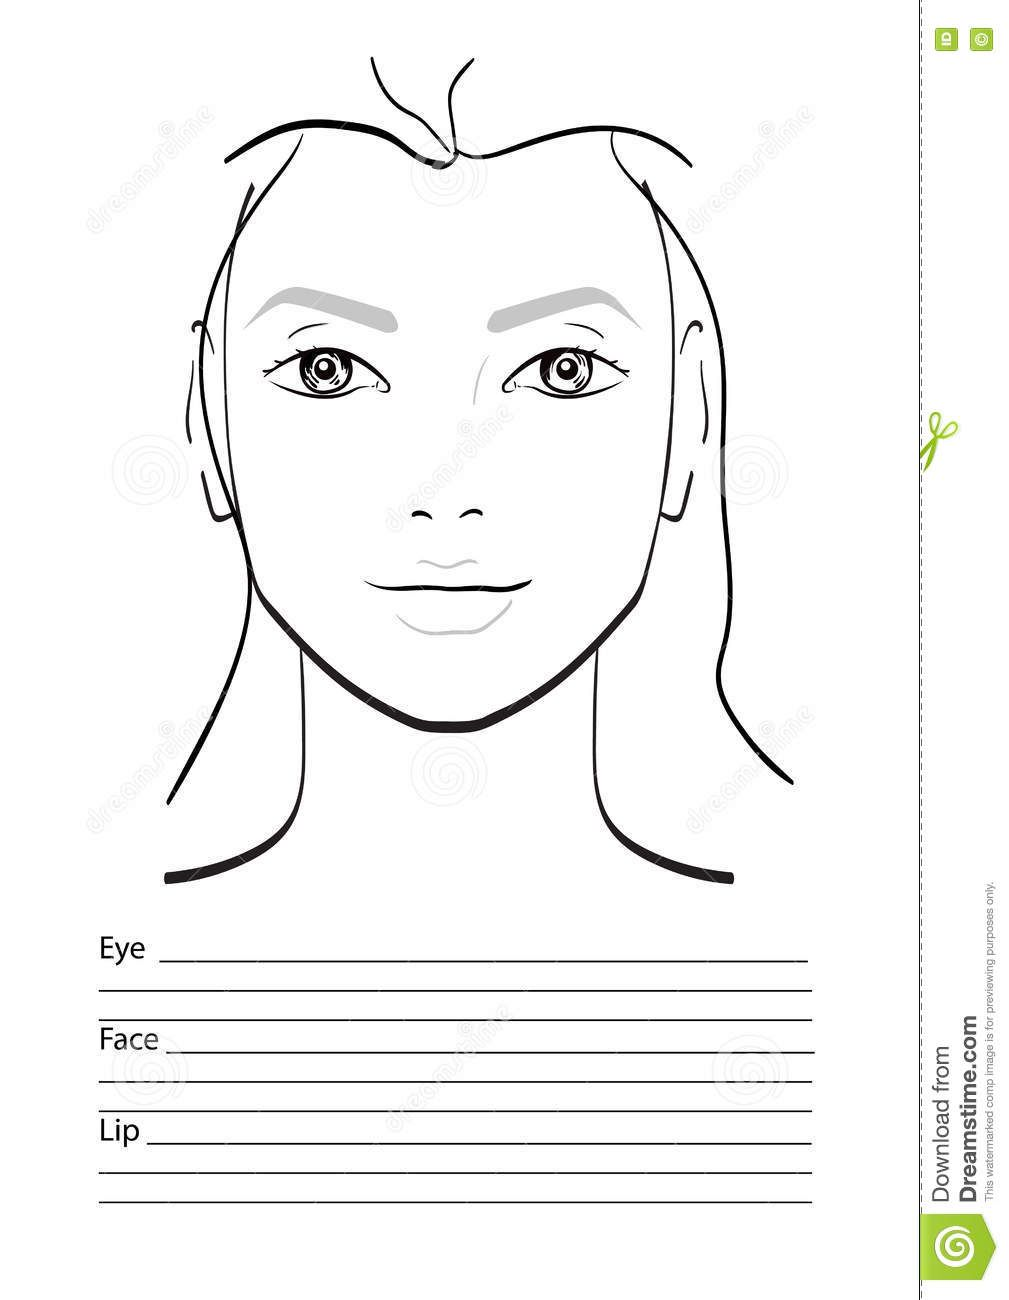 Exact Blank Face Chart To Print Paper For Makeup Face ...